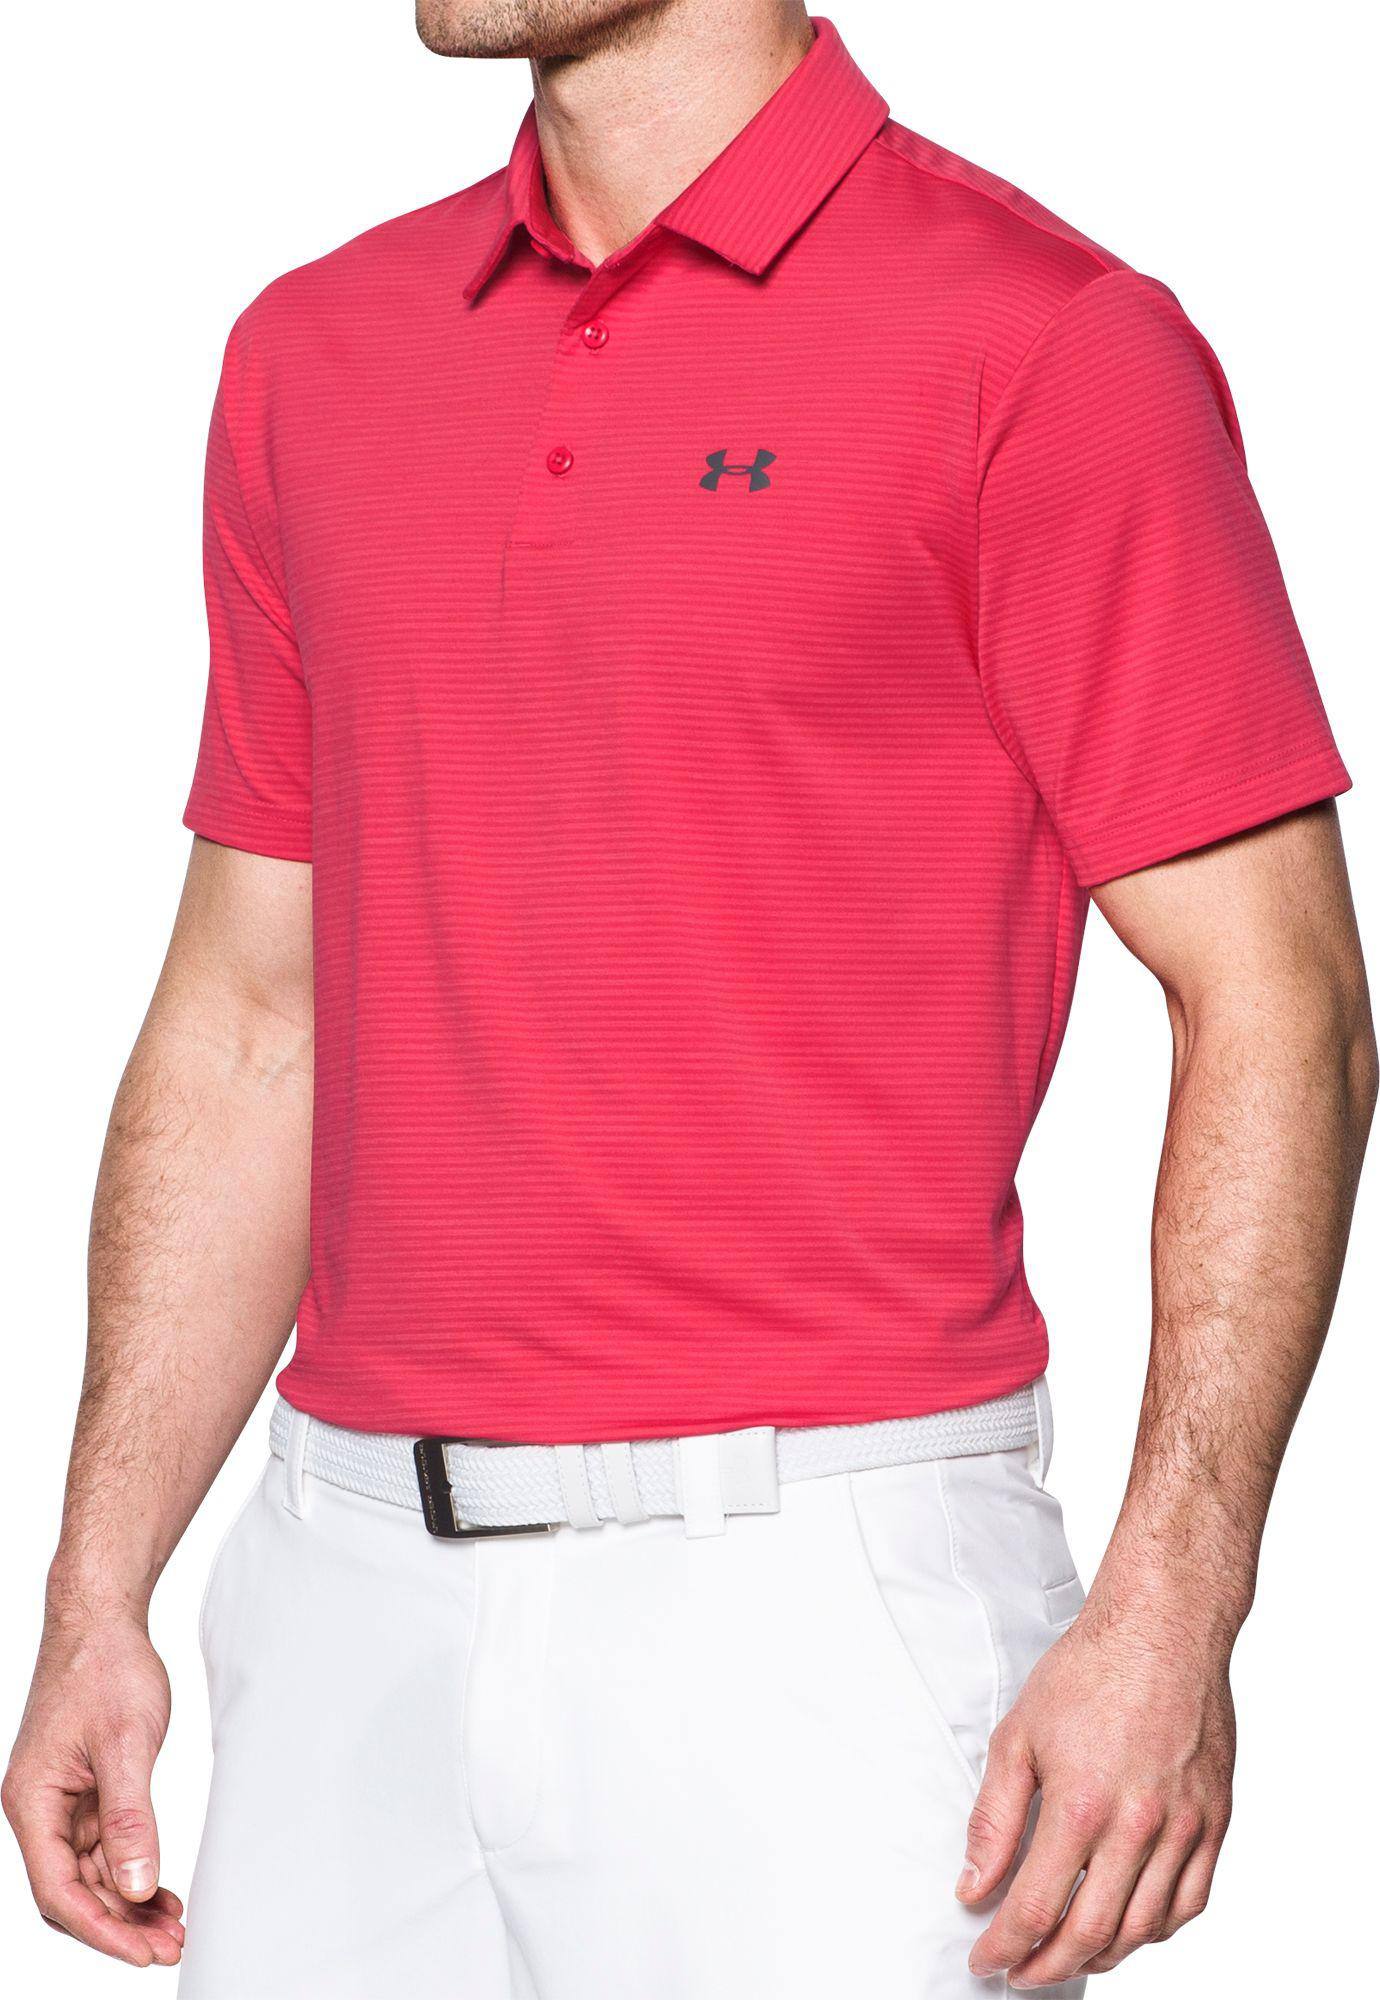 Lyst Under Armour Playoff Pencil Stripe Golf Polo In